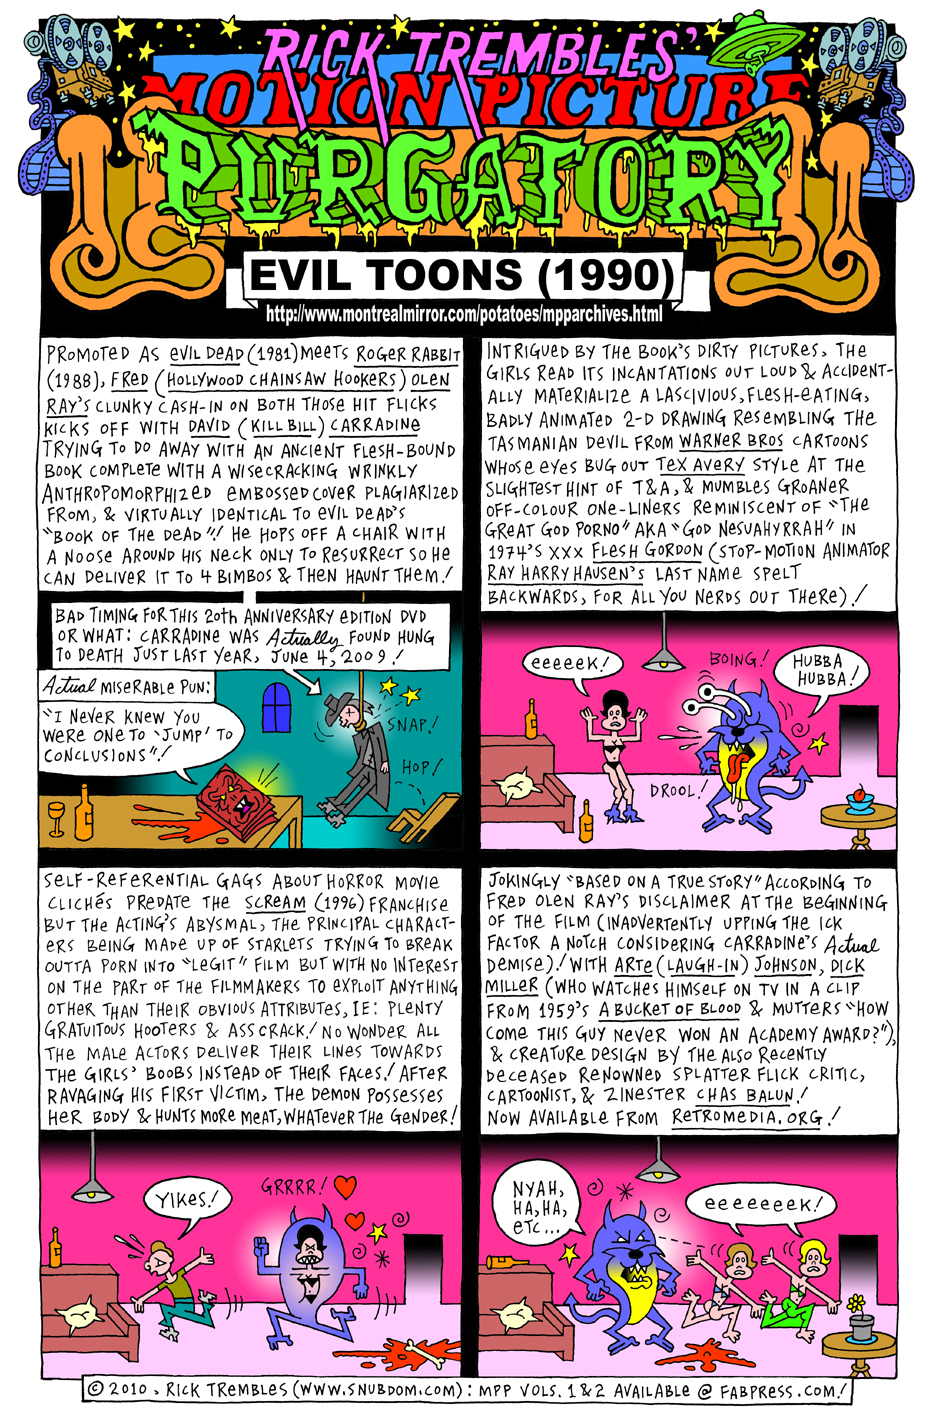 Motion Picture Purgatory Evil Toons 1990 Snubdom